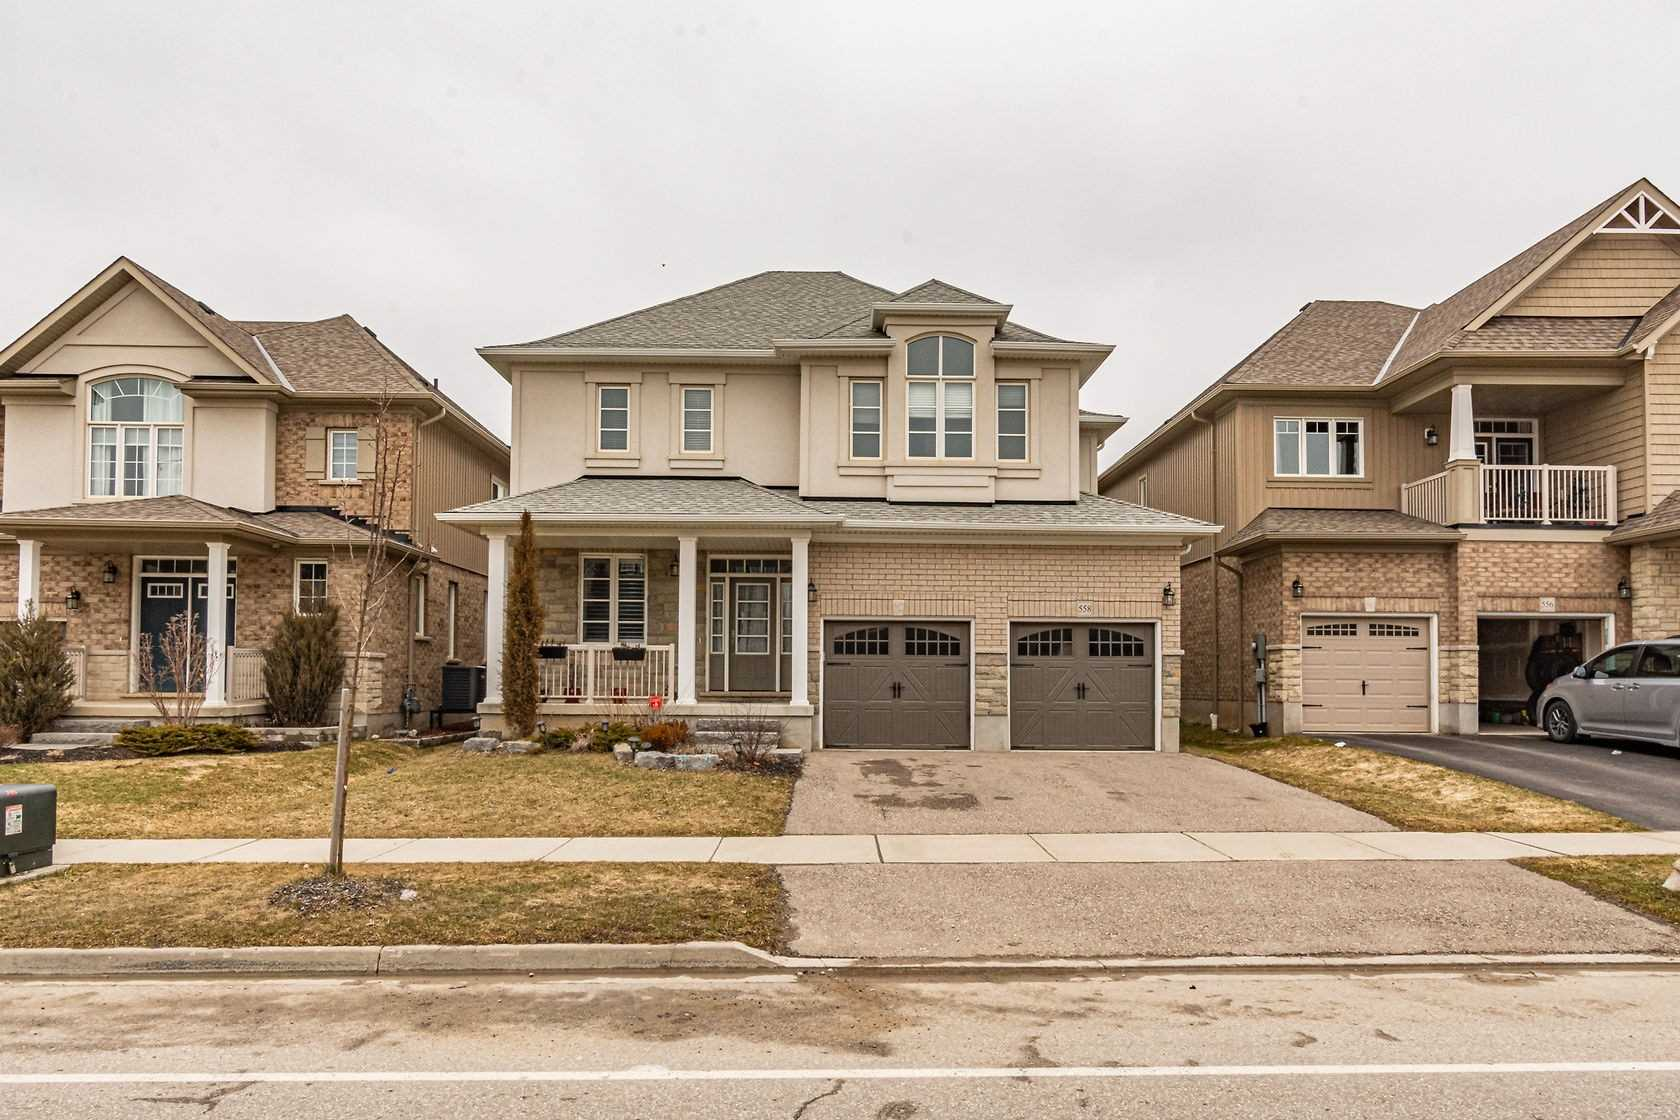 pictures of house for sale MLS: X4728901 located at 558 Sundew Dr, Waterloo N2L0B8